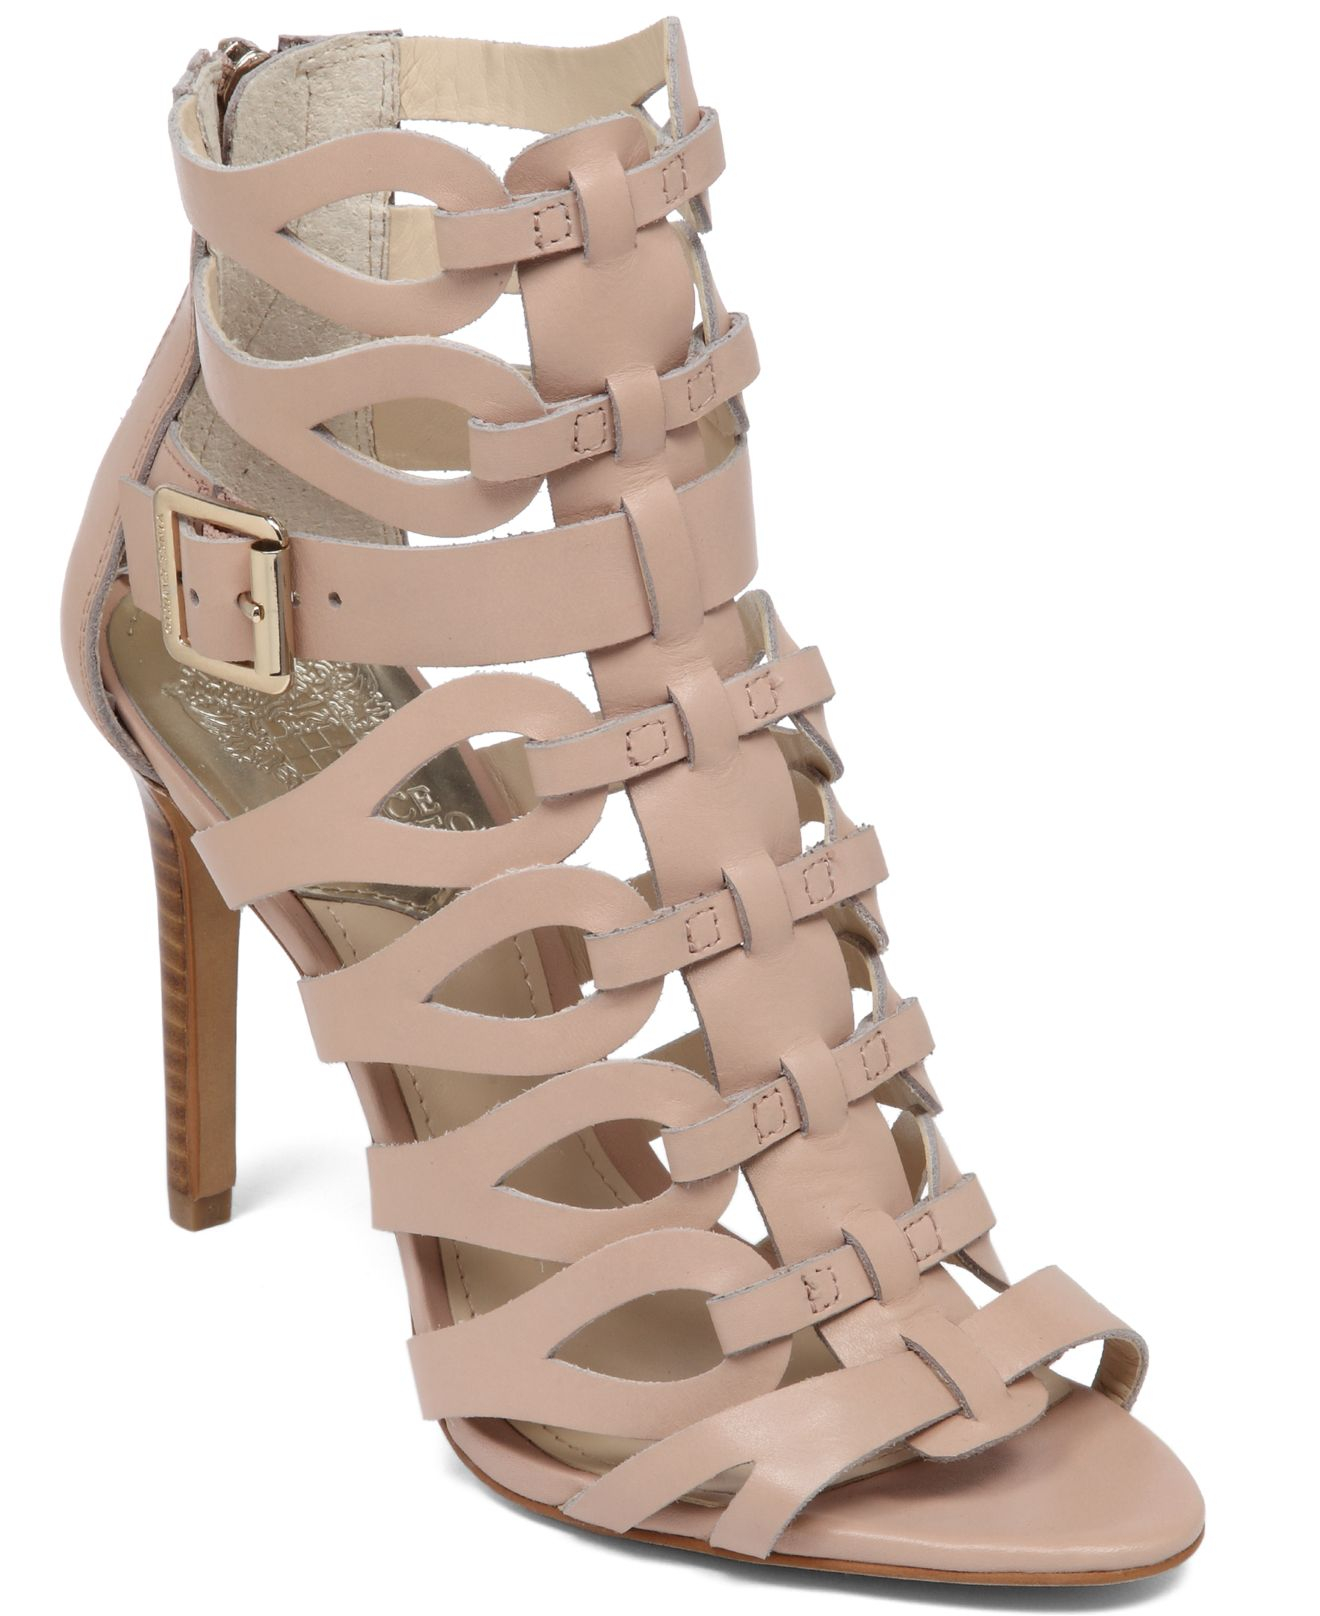 3a7838e59bf Lyst vince camuto ombre gladiator high heel sandals in natural jpg  1320x1616 Gladiator sandals vince camuto